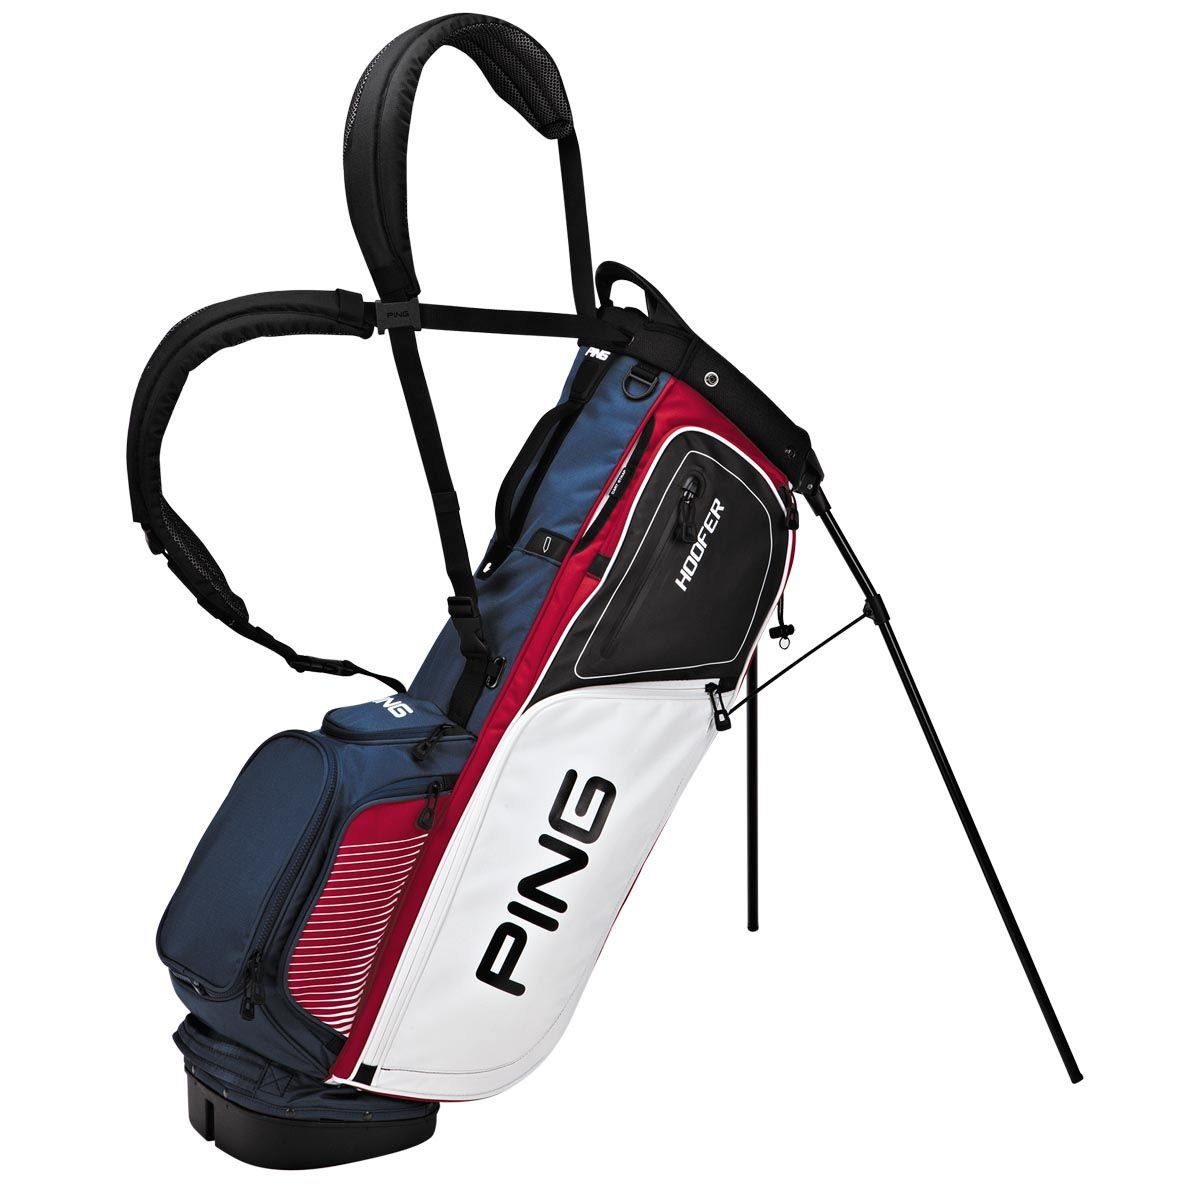 Ping Hoofer Junior light weight golf bag best bag 2017